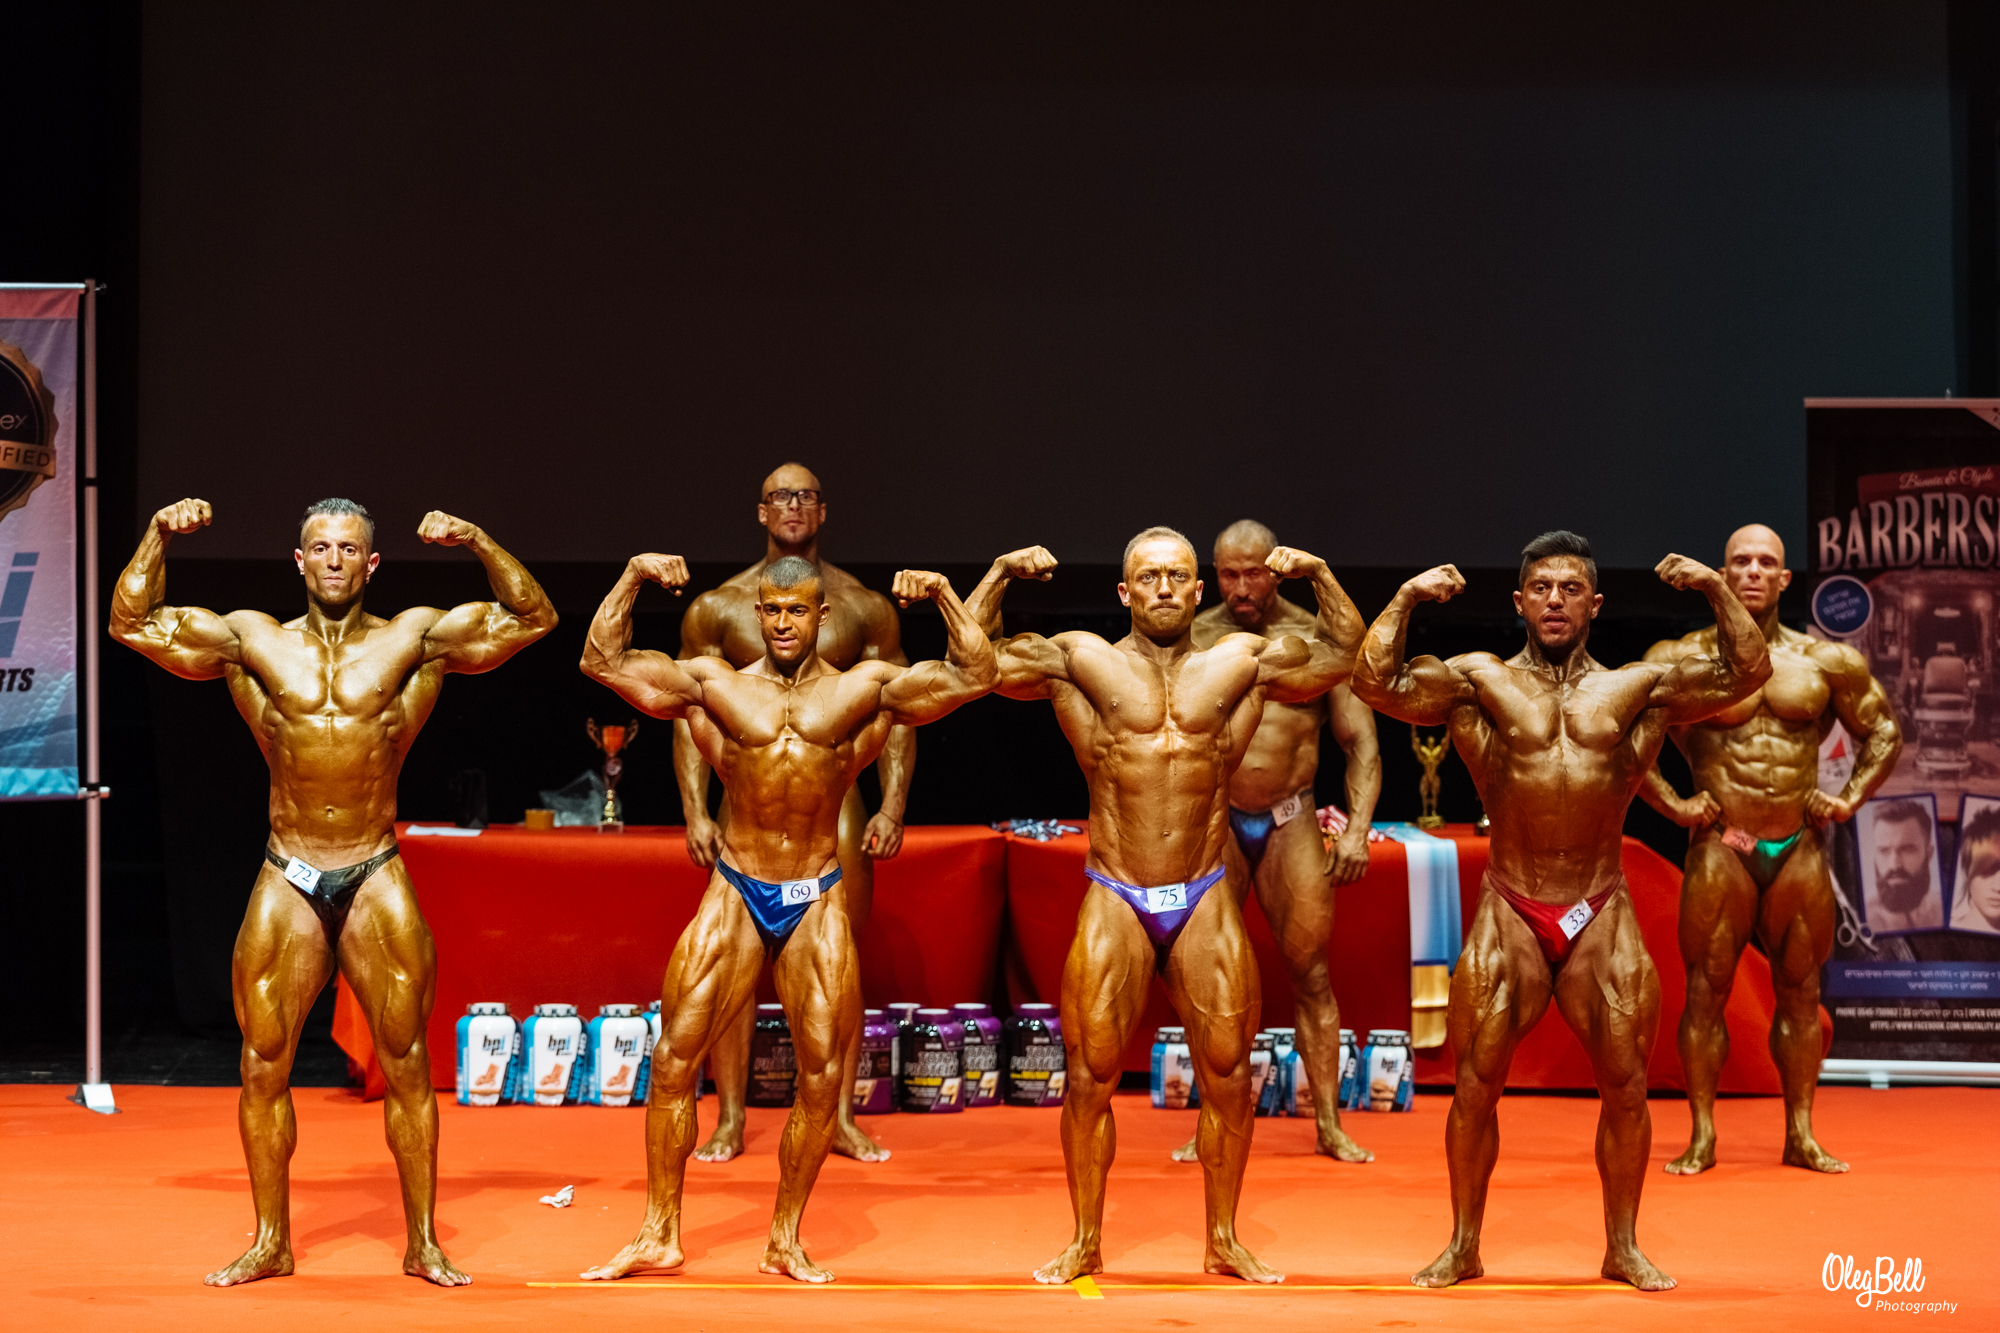 NICOLE_BODYBUILDING_COMPETITIONS_1028.jpg